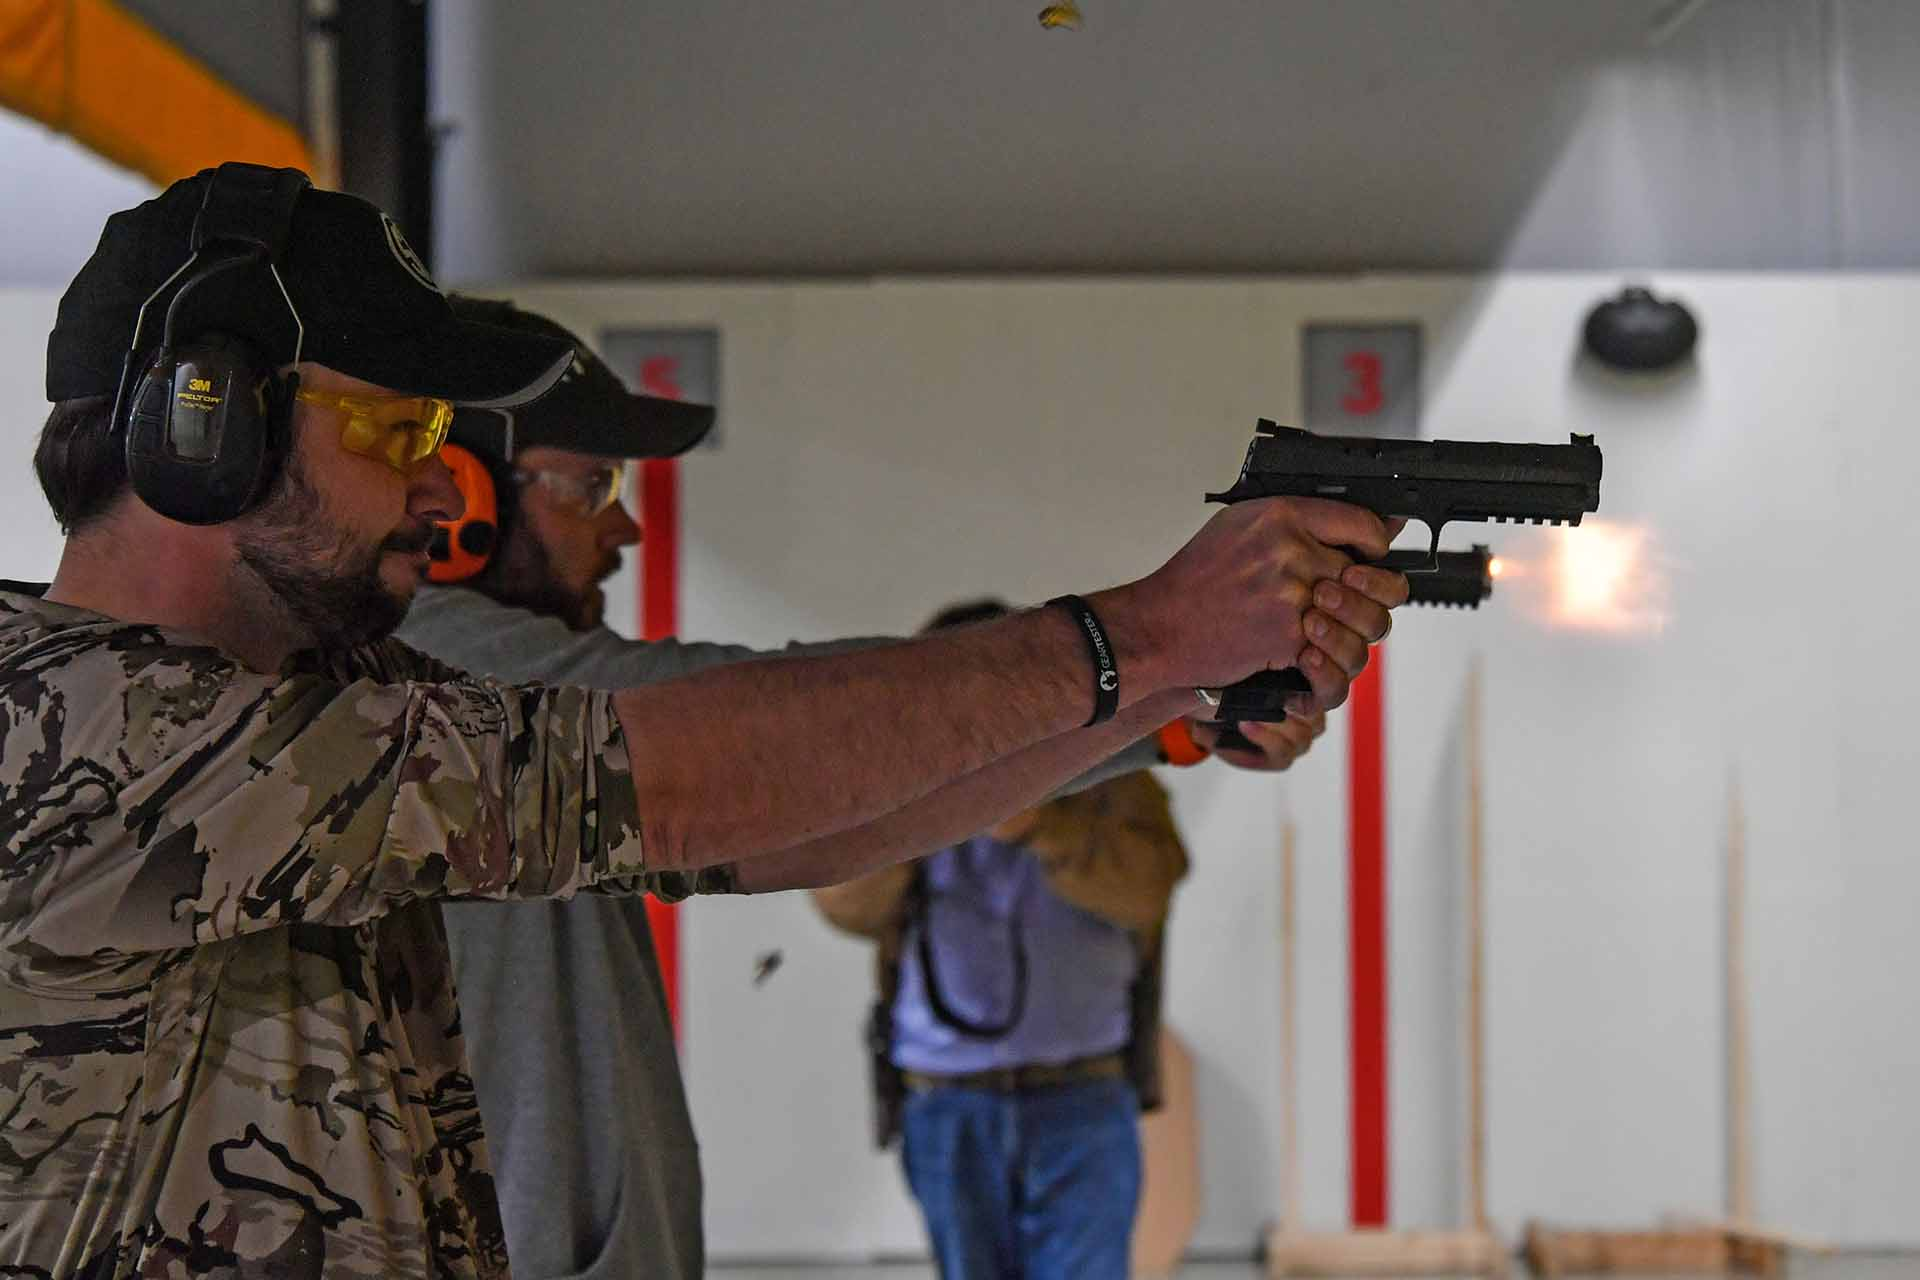 Live fire testing the SIG Sauer P320 X5 pistol at the SIG Sauer Academy in USA